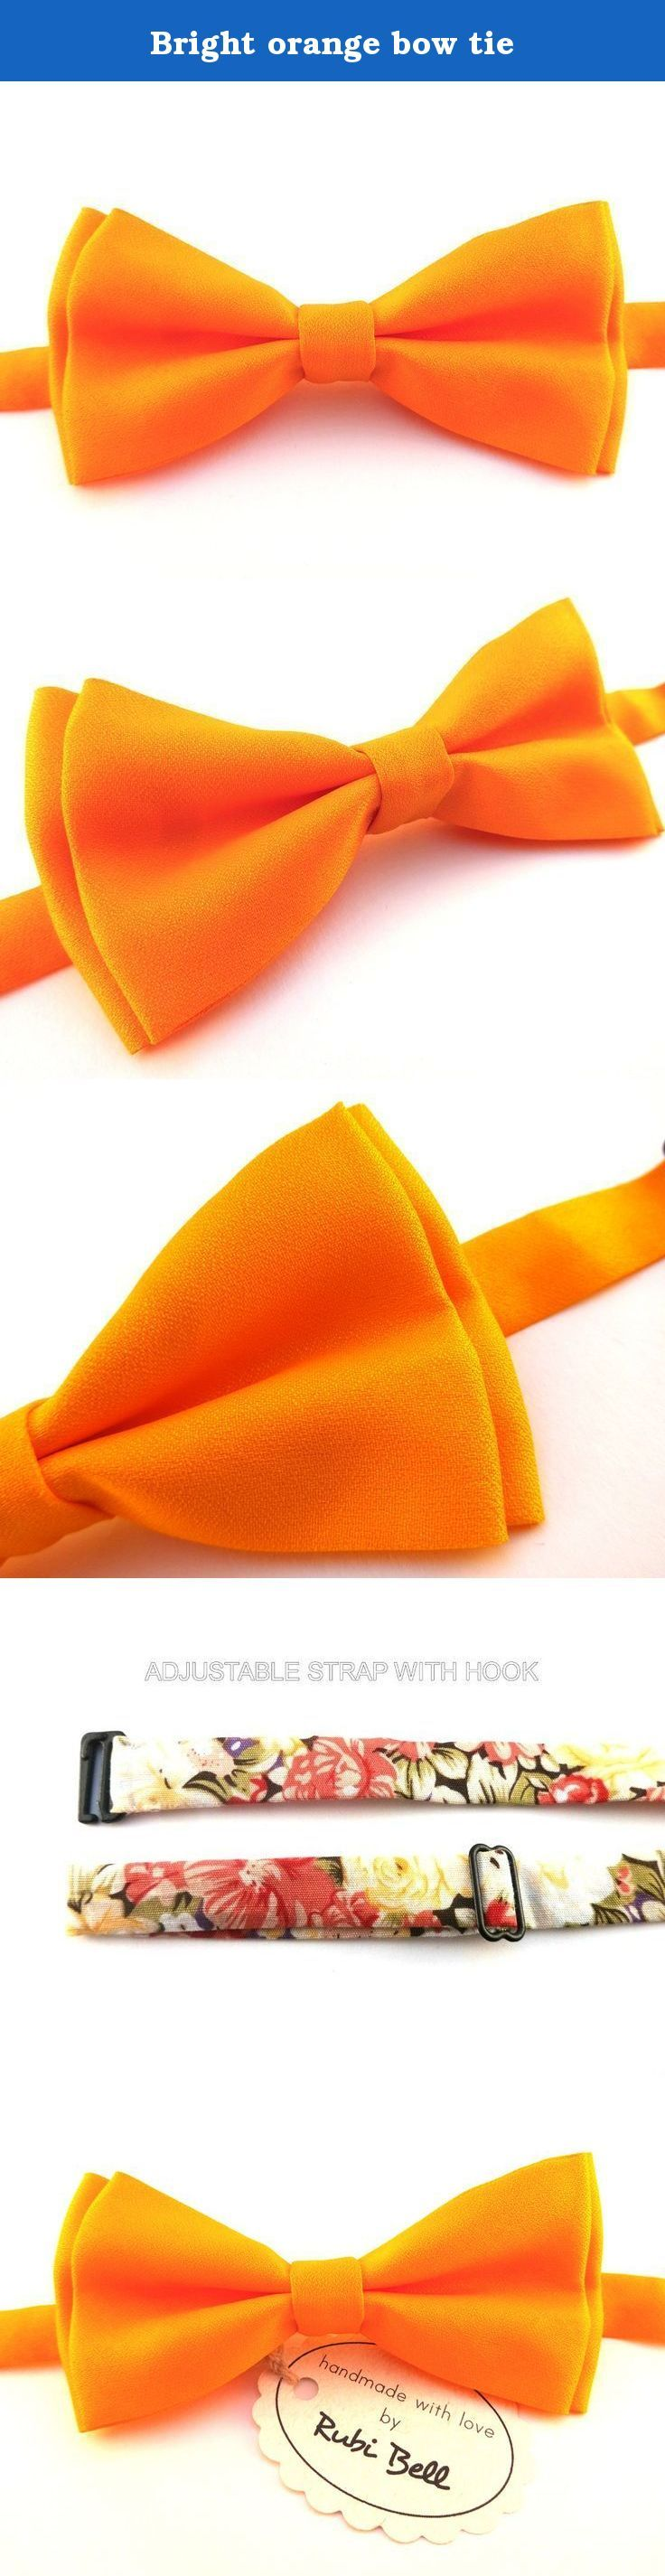 Bright orange bow tie. >>> Size of the bow - Width: 6 cm / 2,36 inches - Length: 12 cm / 4,72 inches >>> Other details - Pre-tied, attached to an adjustable strap (one size fits all) - Care: Dry clean - Comes packaged in a box with logo. >>> Shipping times Europe - 3 - 7 days USA - approx. 2 weeks Rest of the world - 2 - 3 weeks Each package dispatched with a tracking number. Please allow 1-3 days for order processing before item is dispatched. Please contact us, if you prefer some other...